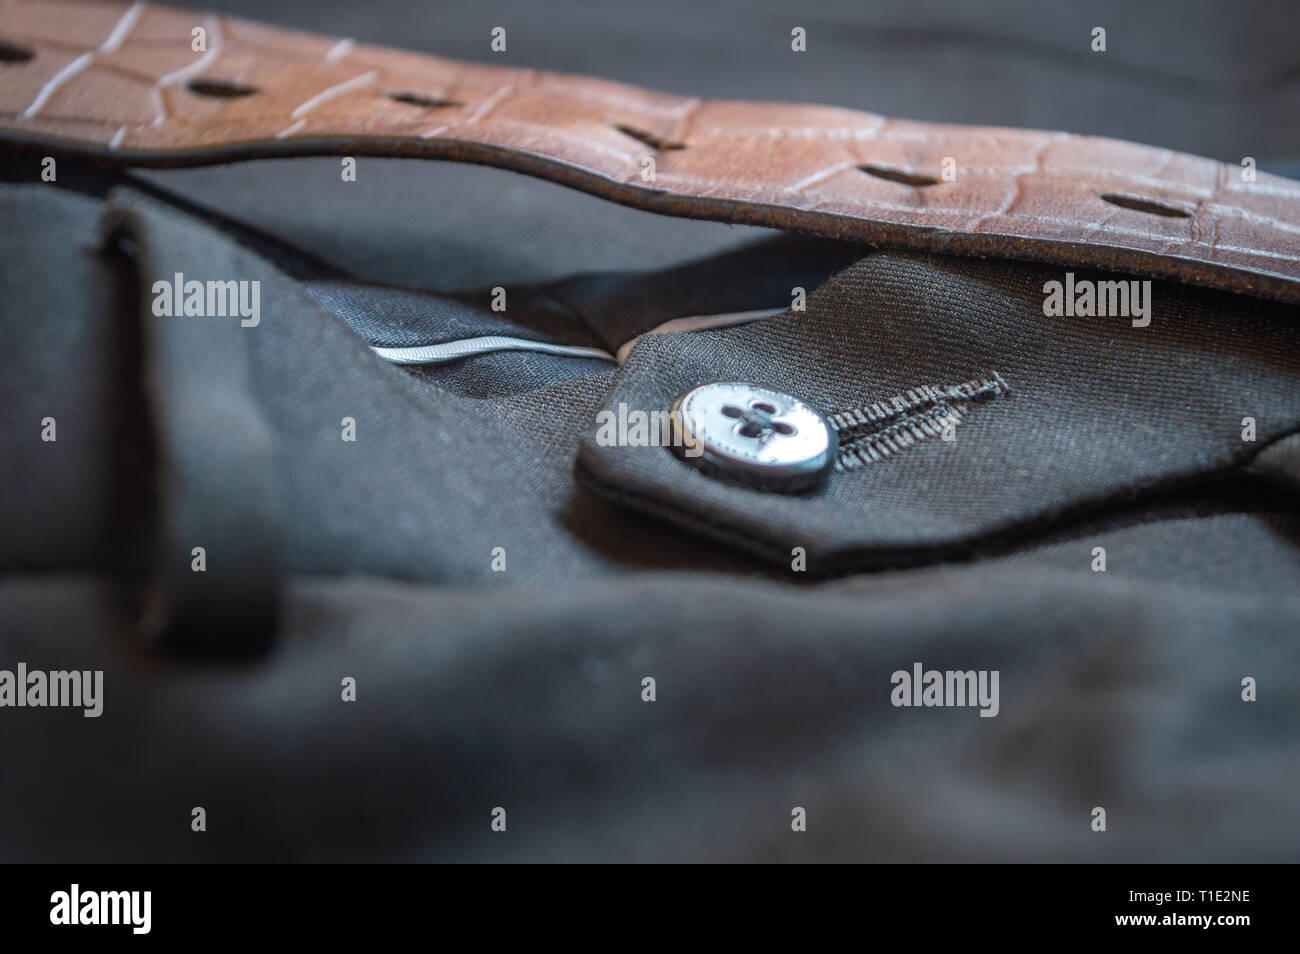 Close up of the button of a grey formal pant with a brown leather belt - Stock Image